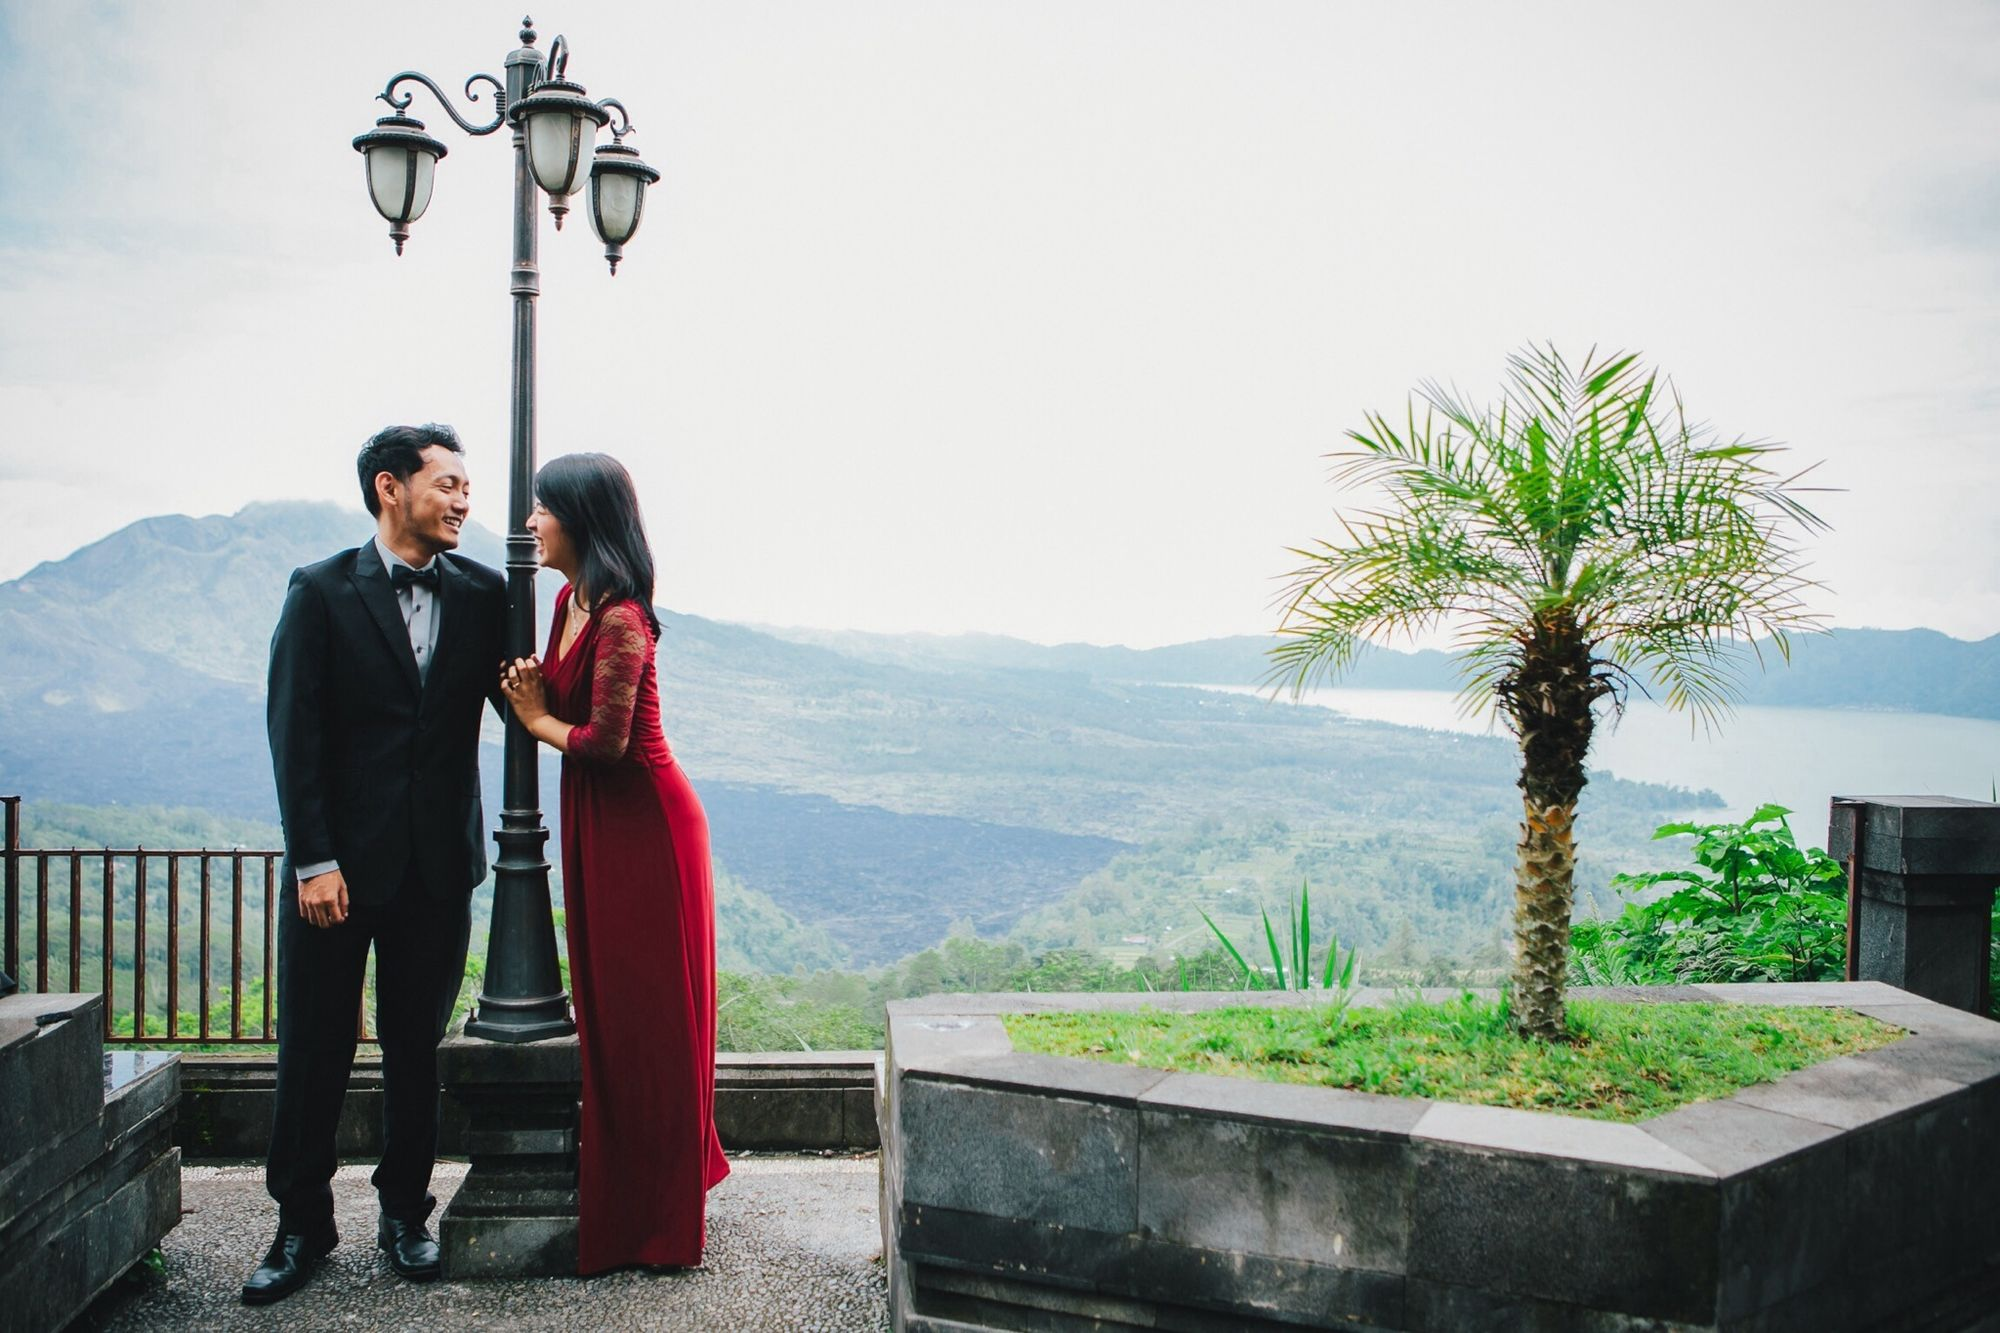 The beautifull of kintamani bangli...perfect place for nature prewedding photo session Love Nature Check This Out Wedding Photographer of staybright photograph bali || wedding // prewedding // engagement //based in bali. Email : idabagussugitayasa@yahoo.com